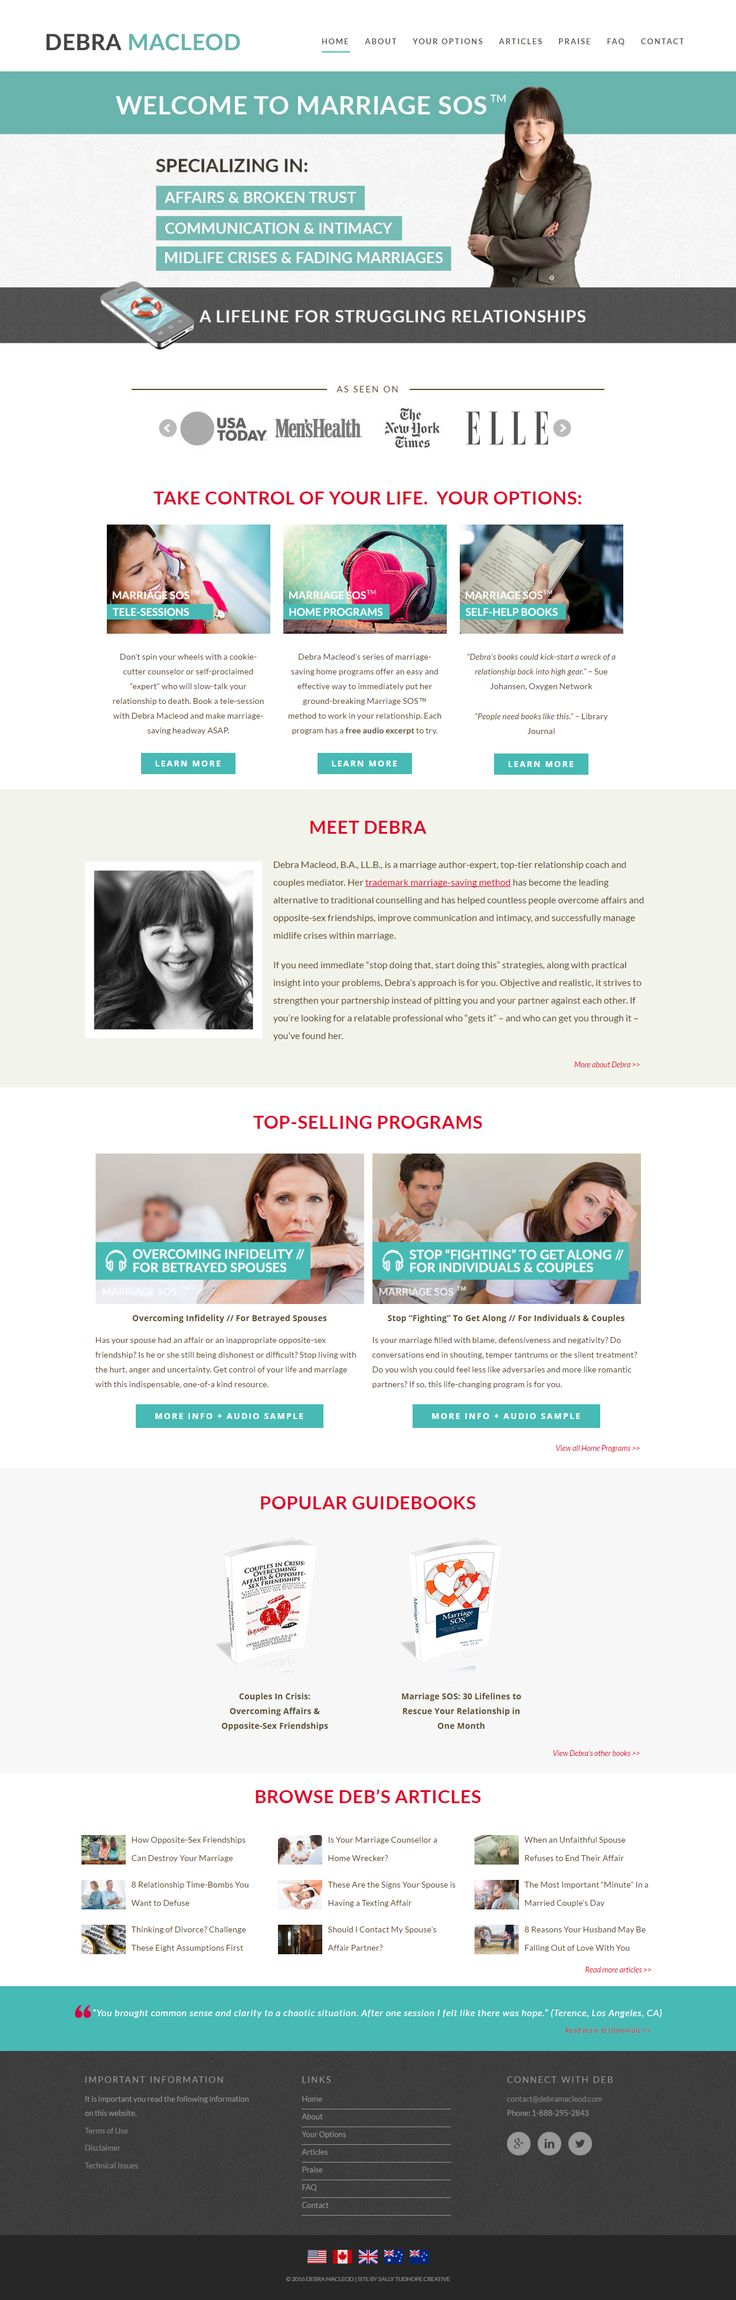 Deborah Macleod - world leading relationship coach. Her website and e-course integration was a dream to build.